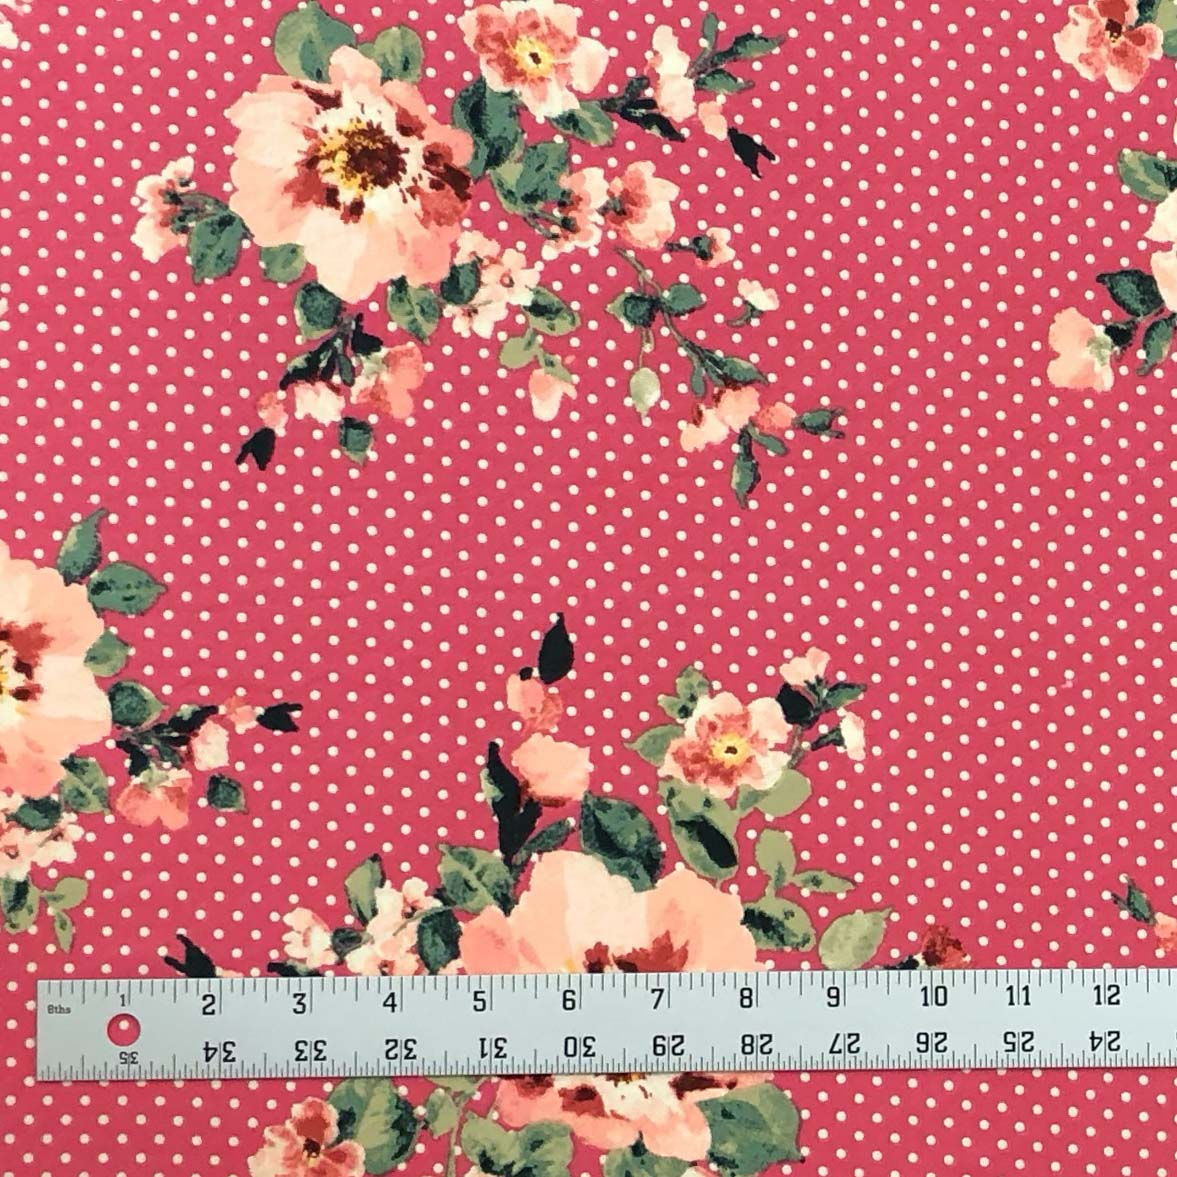 Double Brushed Poly - Floral Dots in Pink